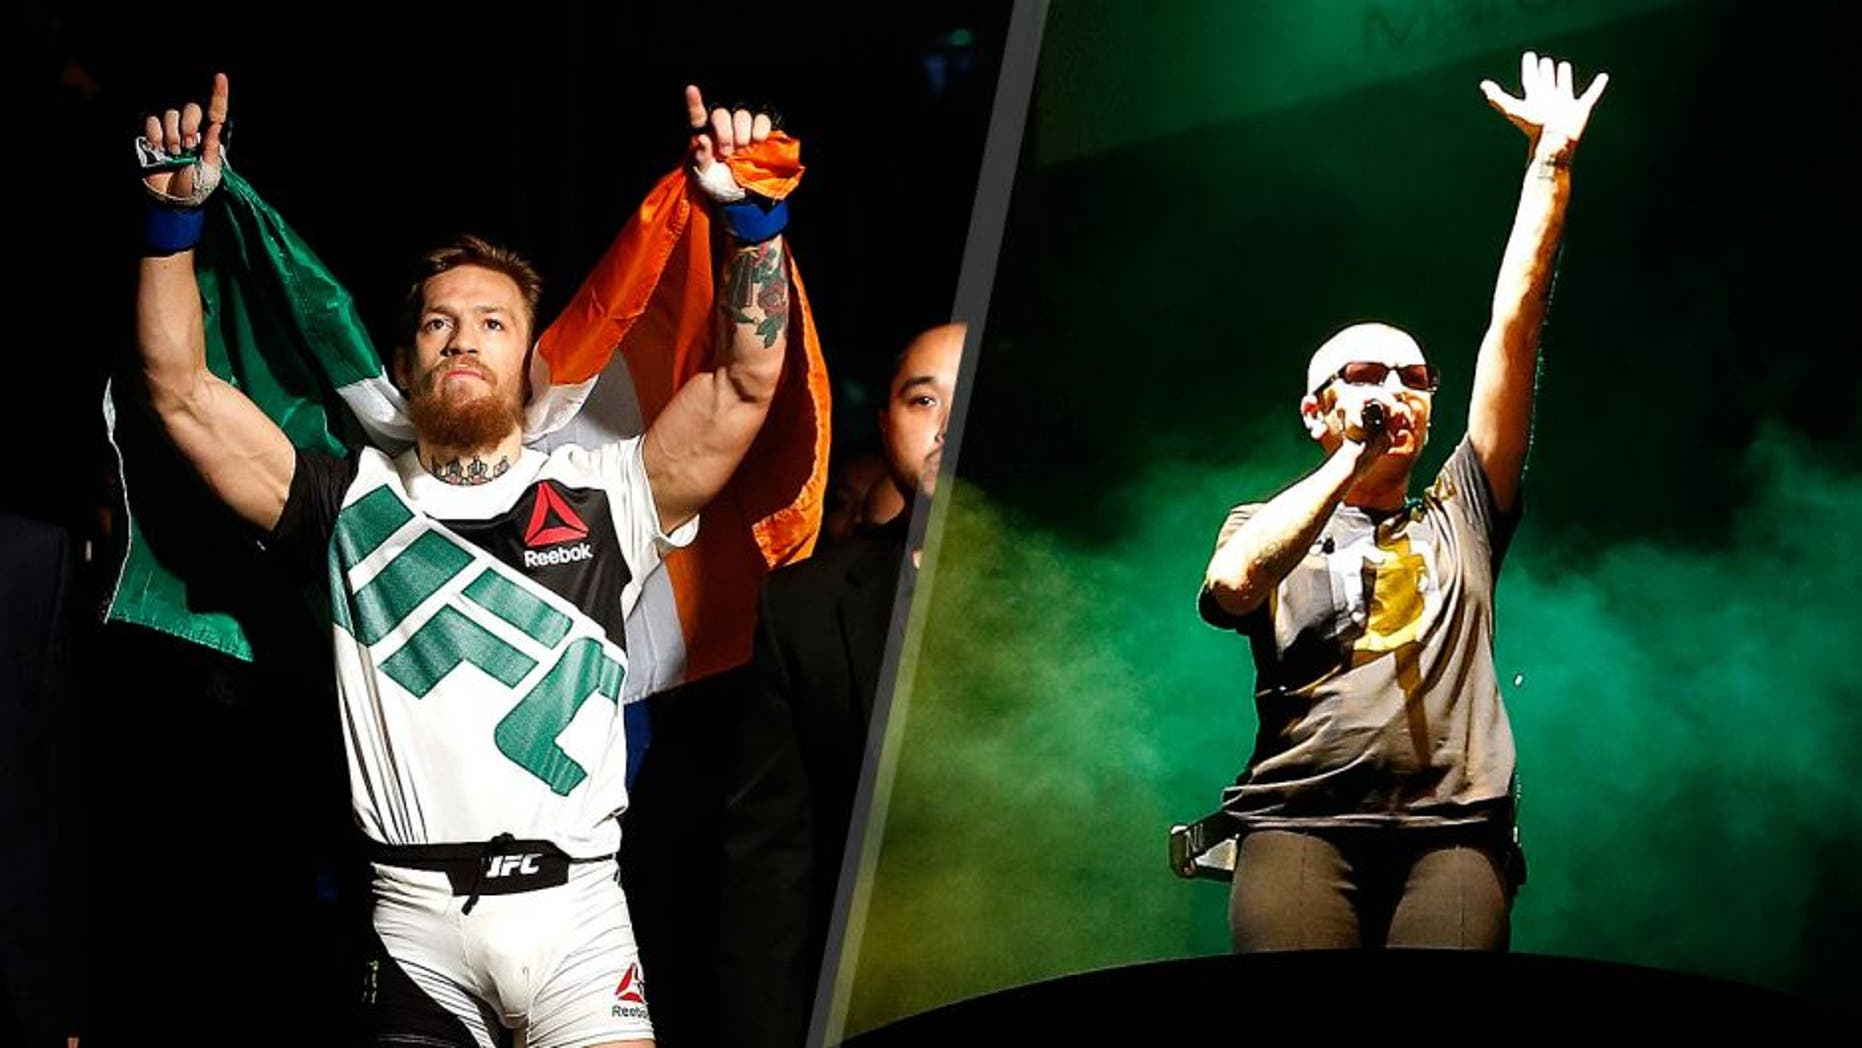 Conor McGregor walks to the Octagon to face Chad Mendes in their UFC interim featherweight title fight during the UFC 189 event inside MGM Grand Garden Arena on July 11, 2015 in Las Vegas, Nevada. (Photo by Christian Petersen/Zuffa LLC/Zuffa LLC via Getty Images) Singer Sinead O'Connor performs during the UFC 189 event inside MGM Grand Garden Arena on July 11, 2015 in Las Vegas, Nevada. (Photo by Christian Petersen/Zuffa LLC/Zuffa LLC via Getty Images)